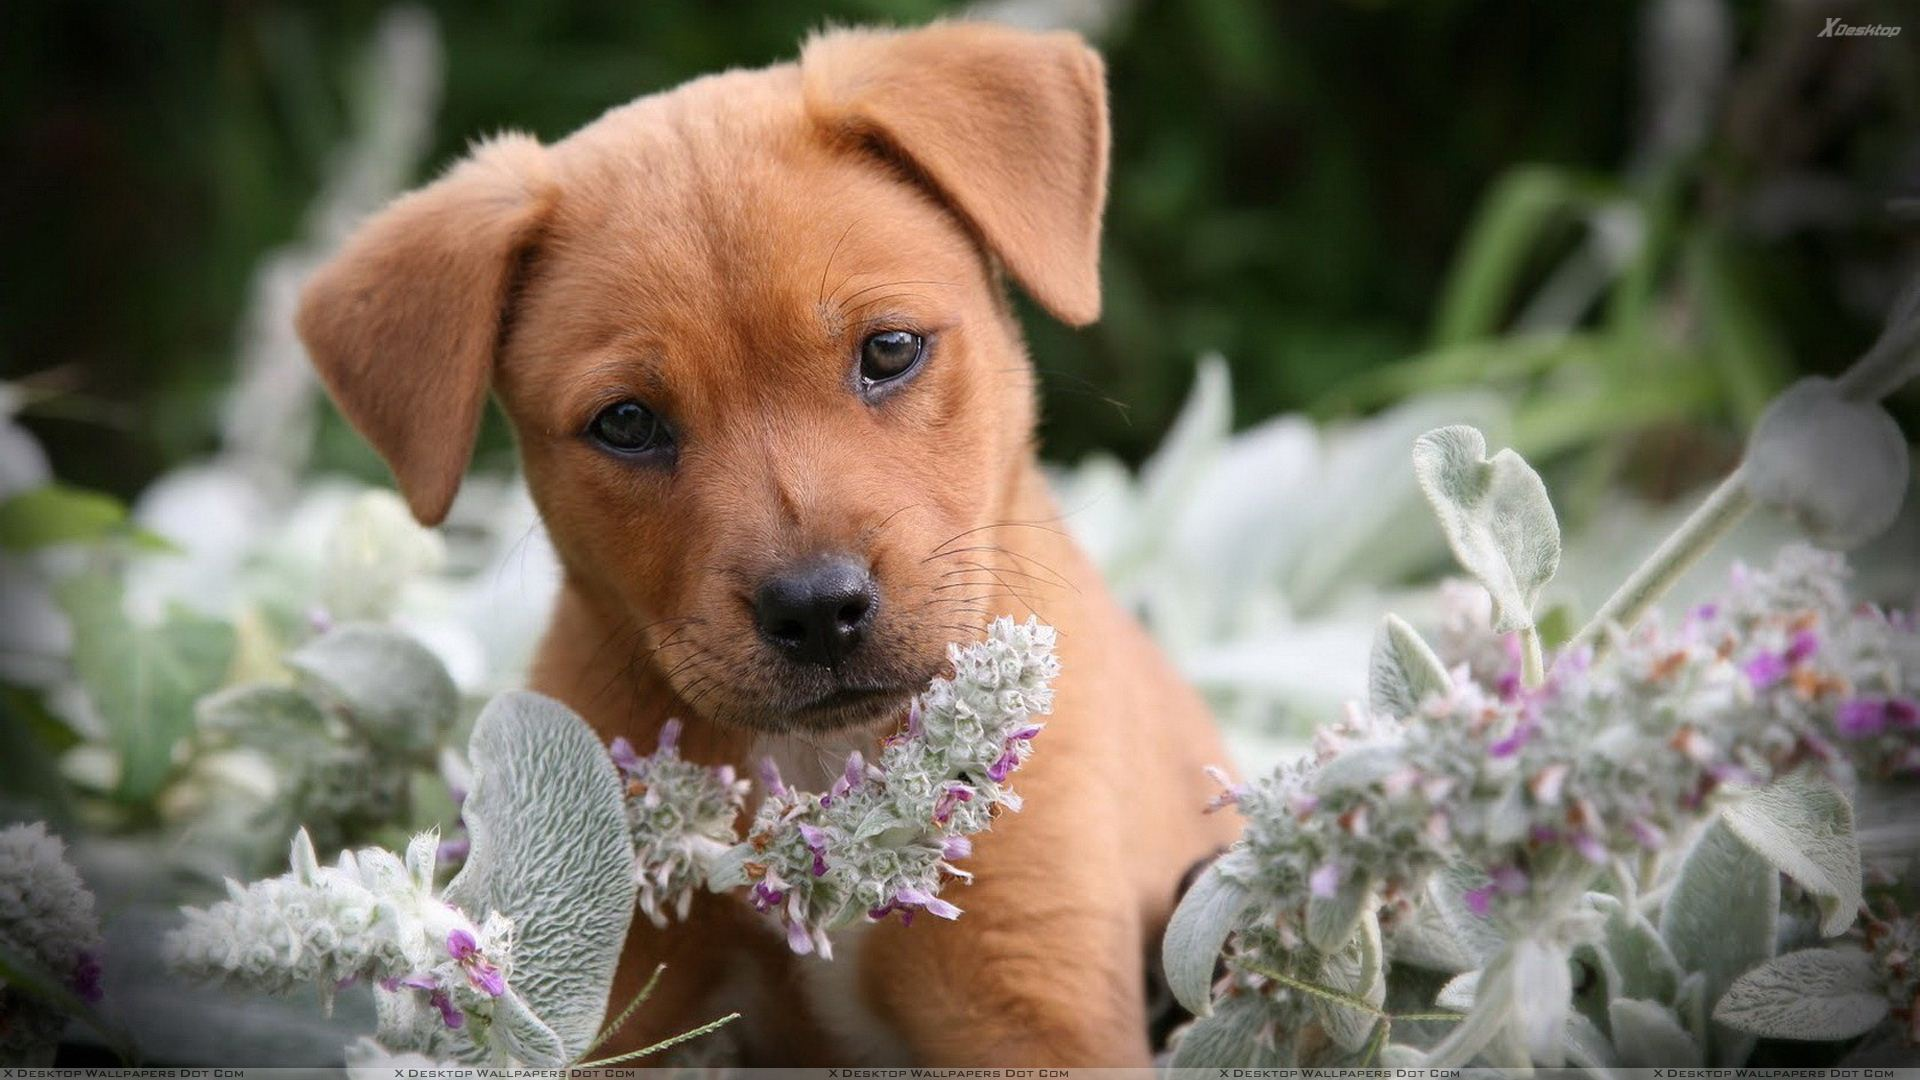 Brown%20Little%20Puppy%20In%20Flowers.jp